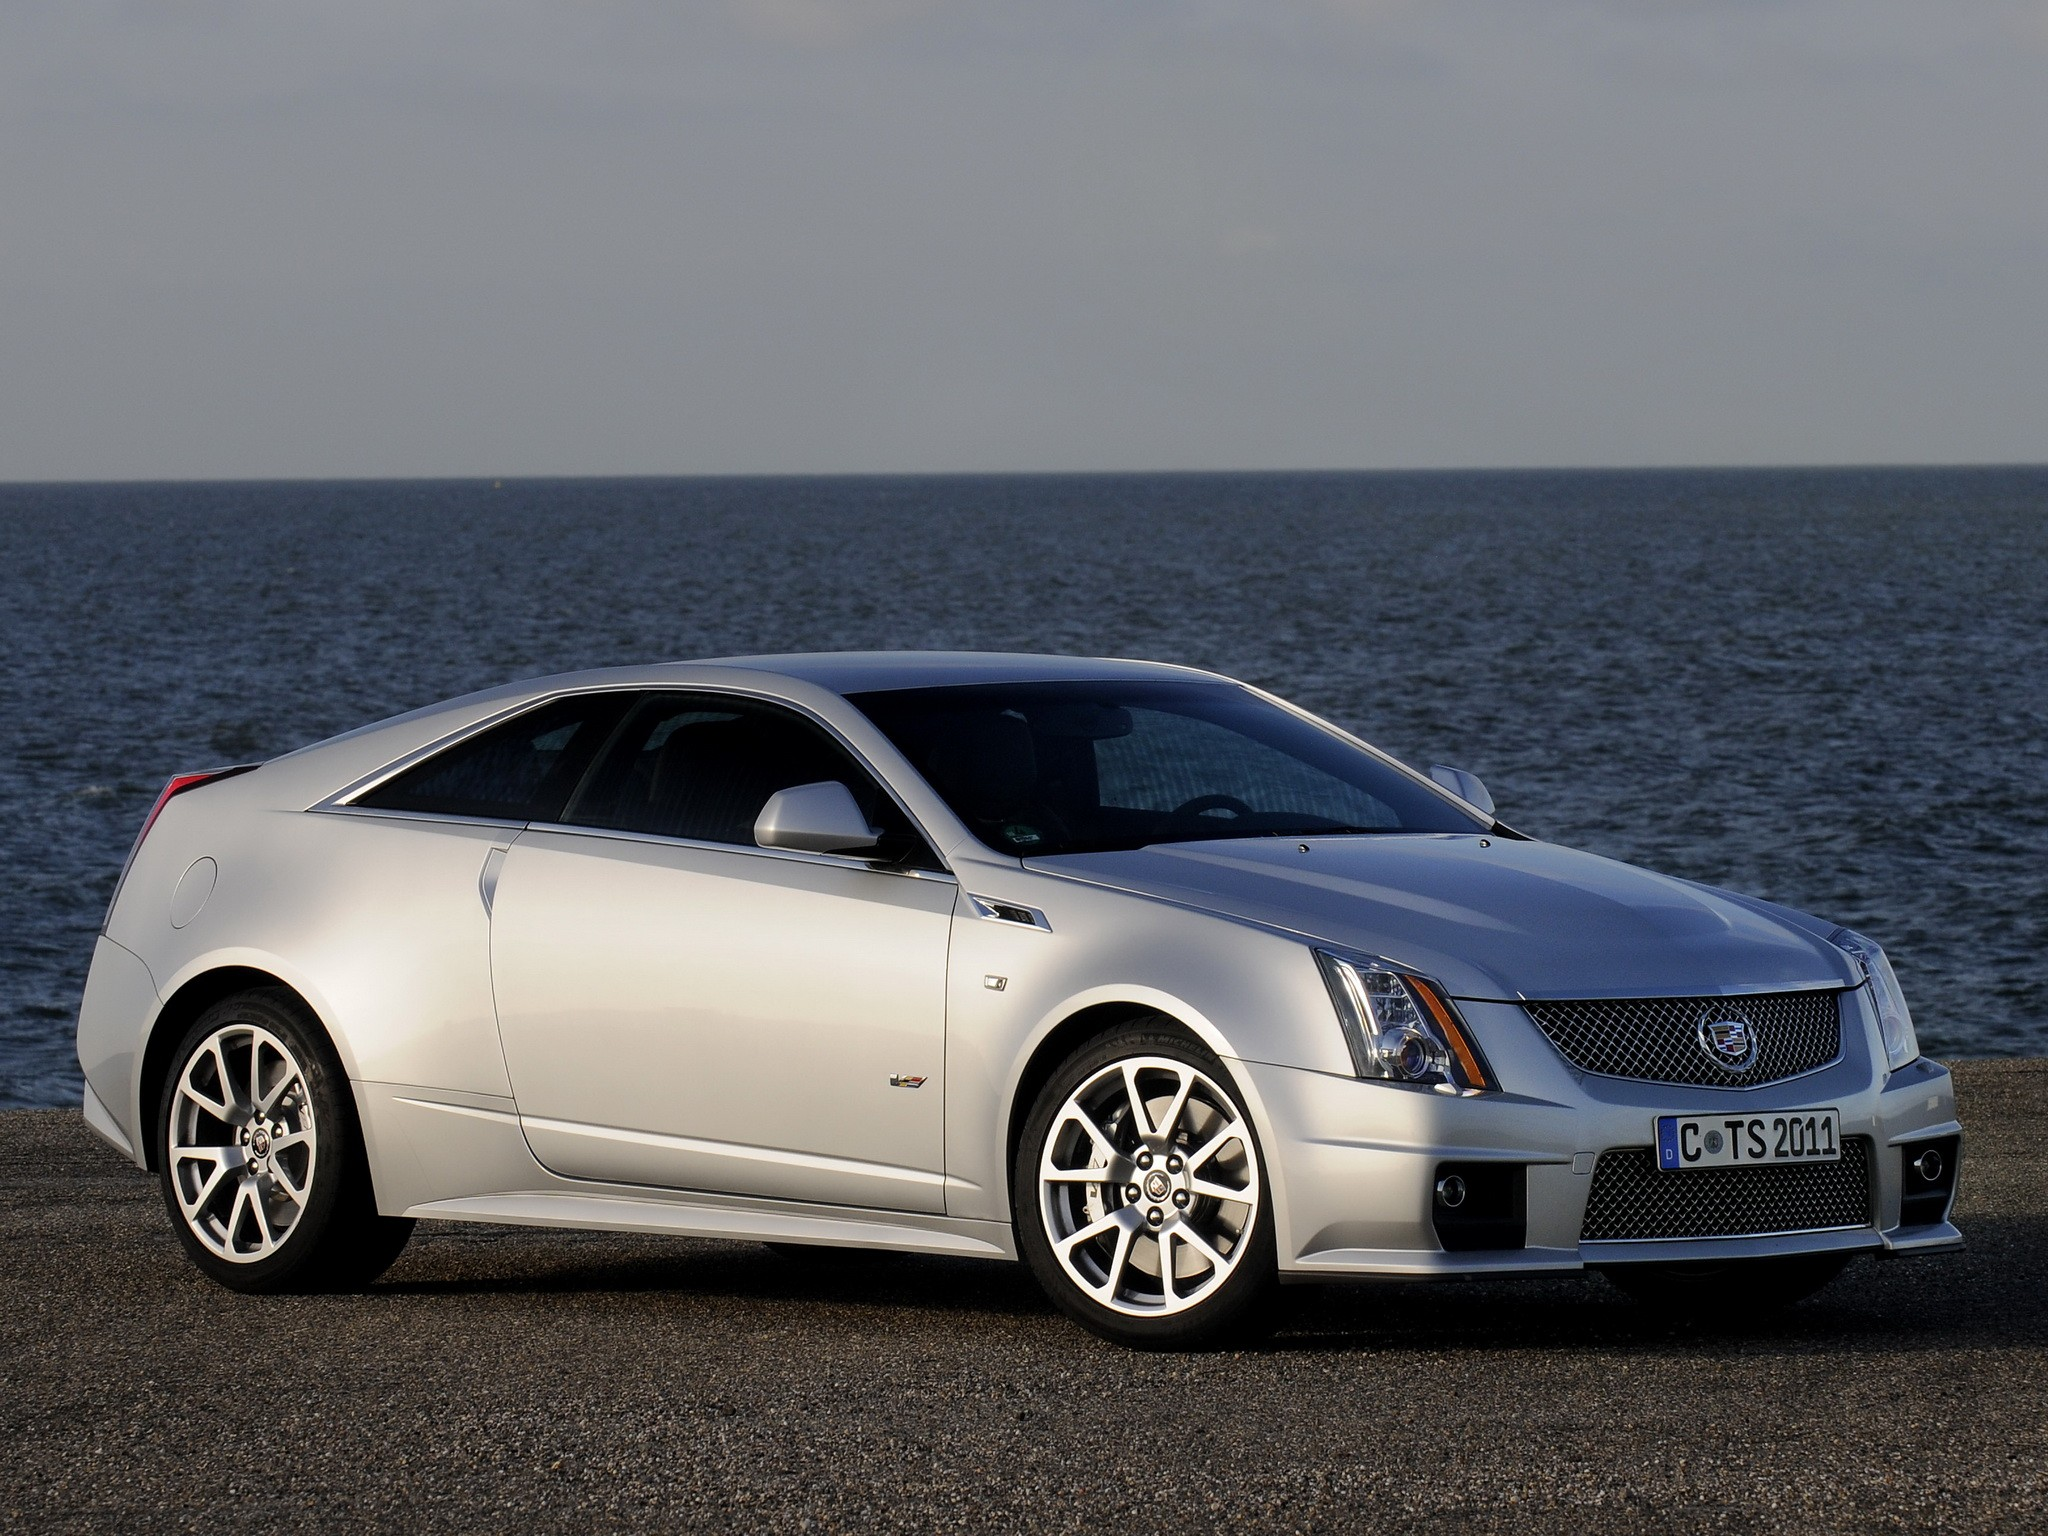 Cadillac Cts V Coupe Specs 2012 2013 2014 2015 2016